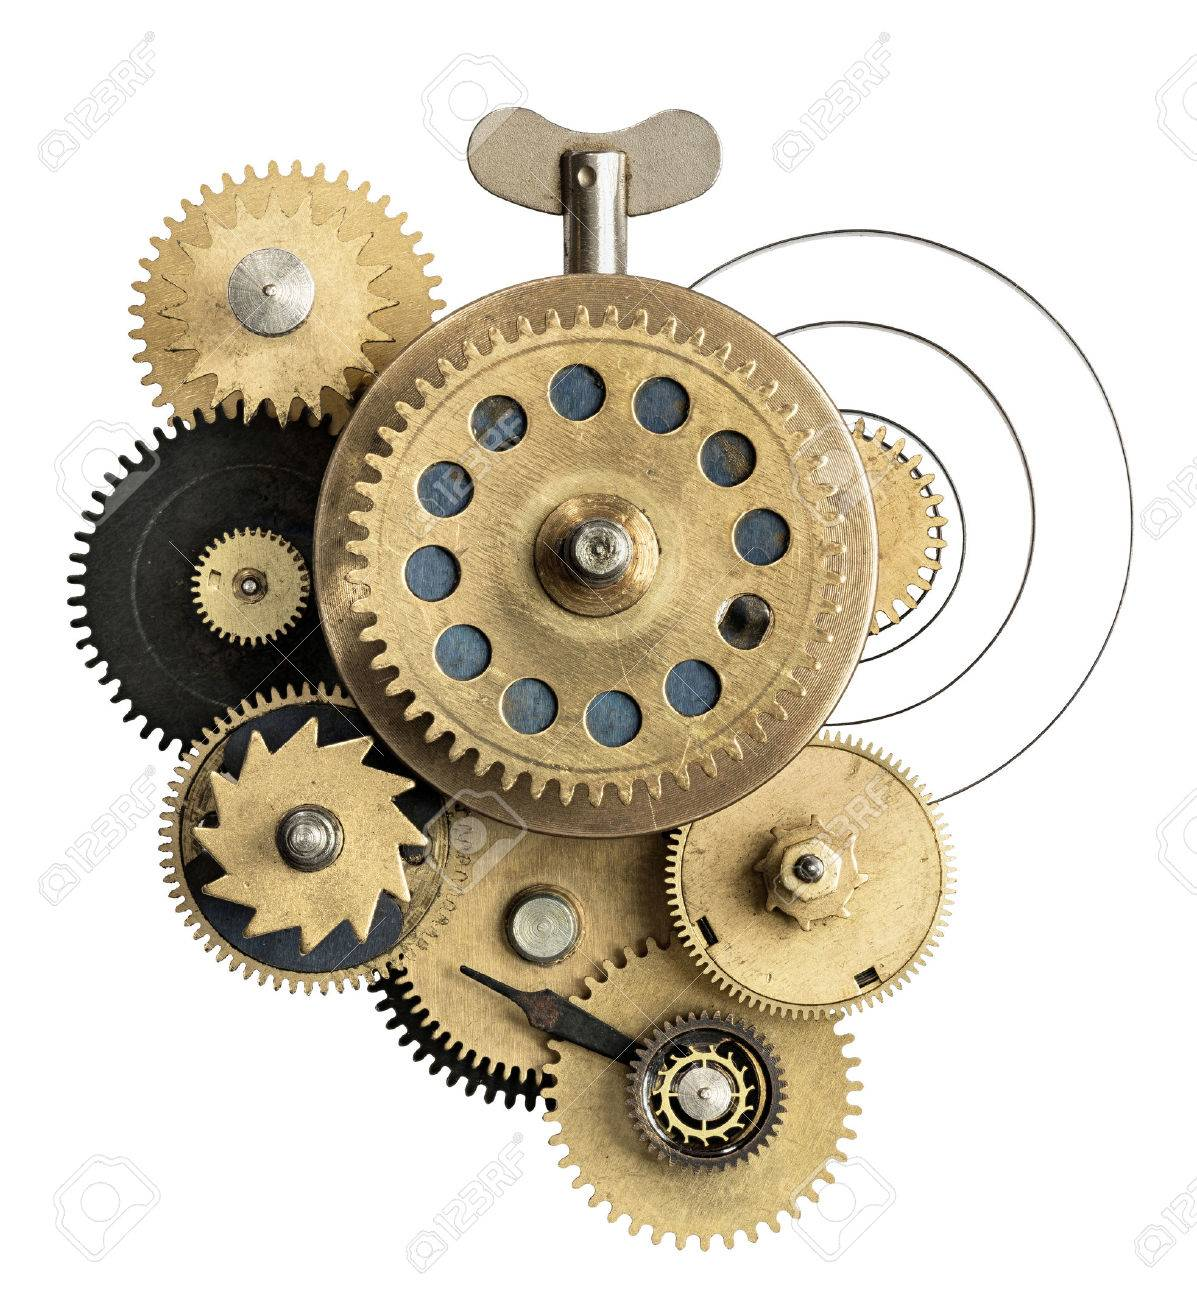 Stylized metal collage of clockwork. Stock Photo - 30409642